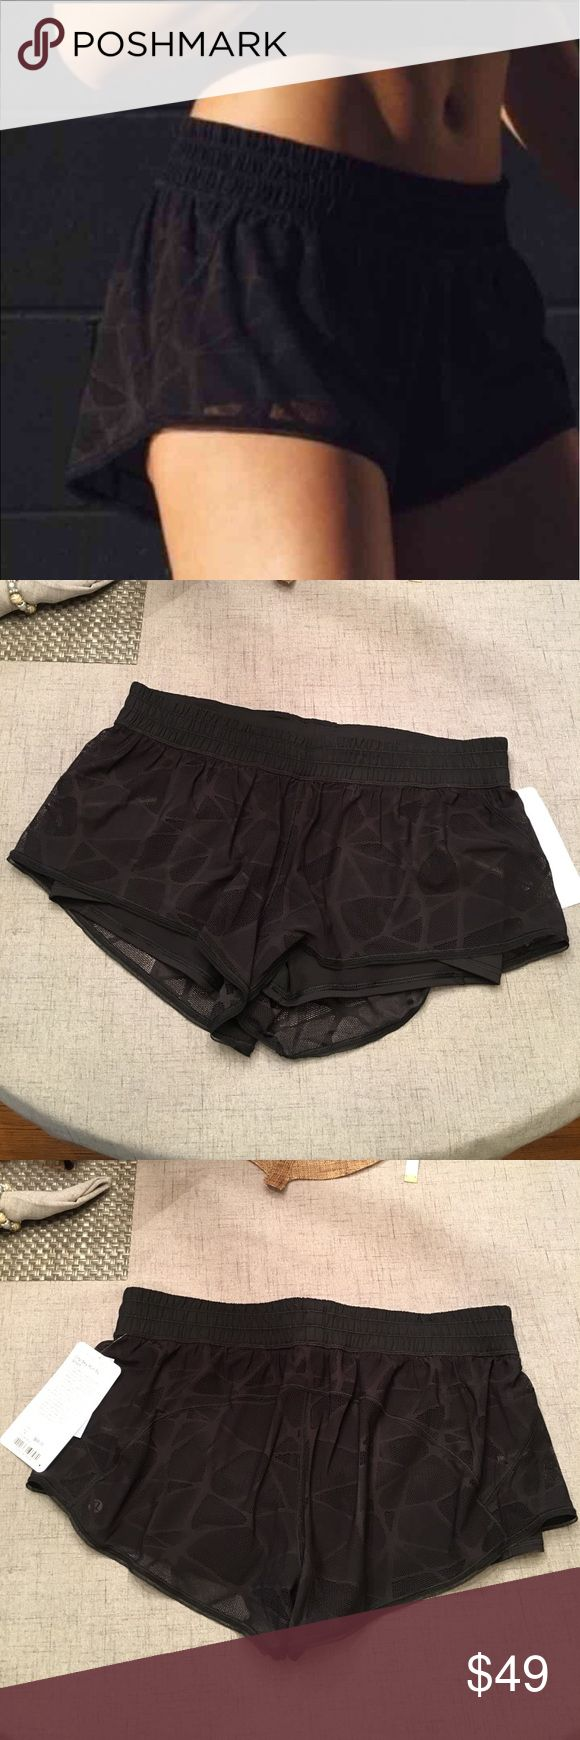 Lululemon Shorts City Sky Run New with tags. Size 12. Black shorts with lace overlay. Very cute on :)   Happy to bundle :)  Lots of Victoria Secret, Pink, Nike, Under Armour, Lululemon, Patagonia, Miss Me, and other Buckle items to list. Follow me to check out the great deals. lululemon athletica Shorts